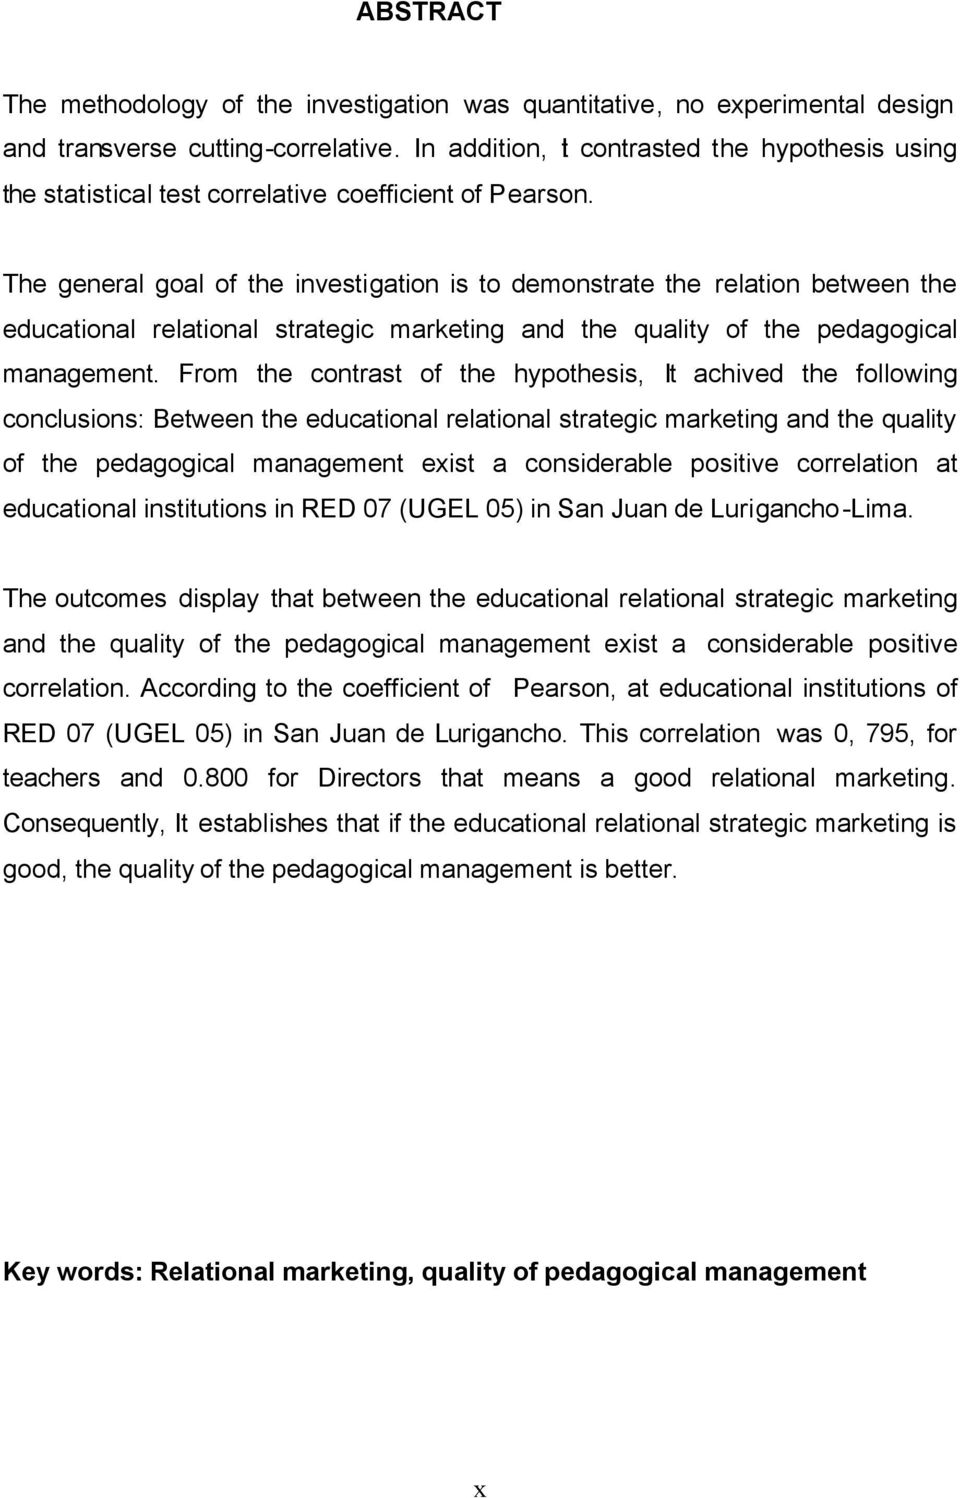 The general goal of the investigation is to demonstrate the relation between the educational relational strategic marketing and the quality of the pedagogical management.